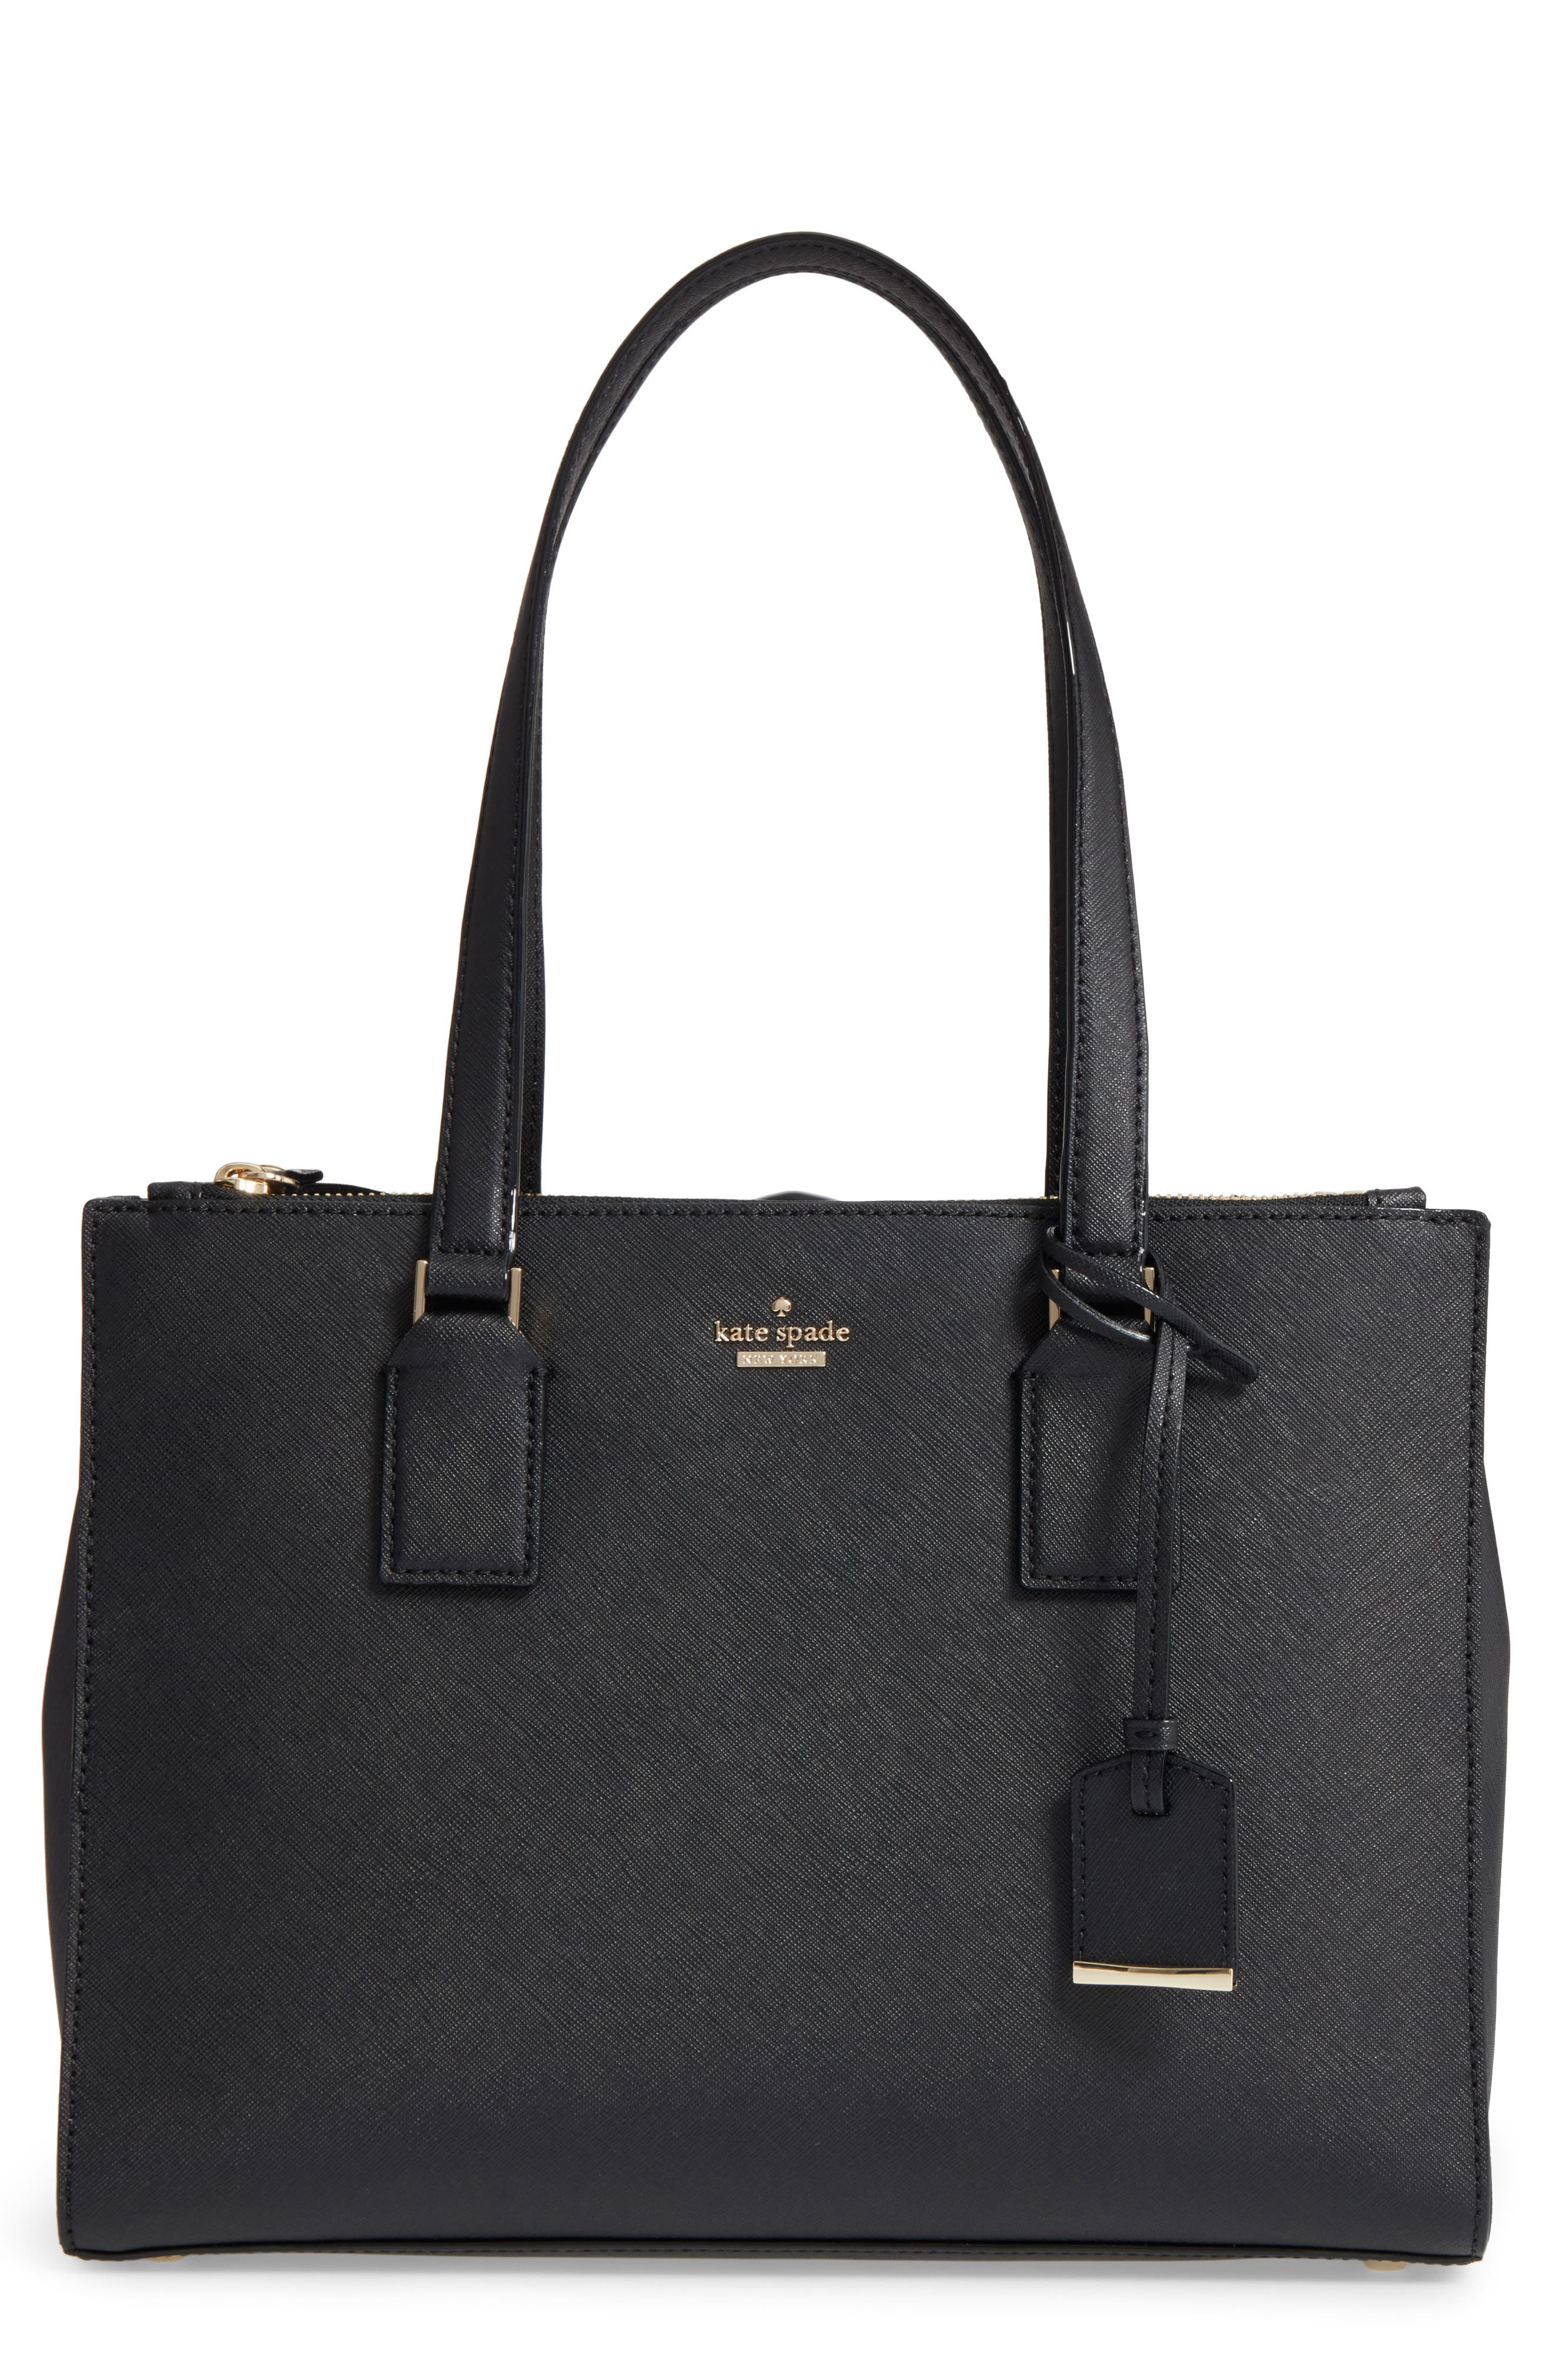 Alternate Image 1 Selected - kate spade new york cameron street - small jensen leather tote